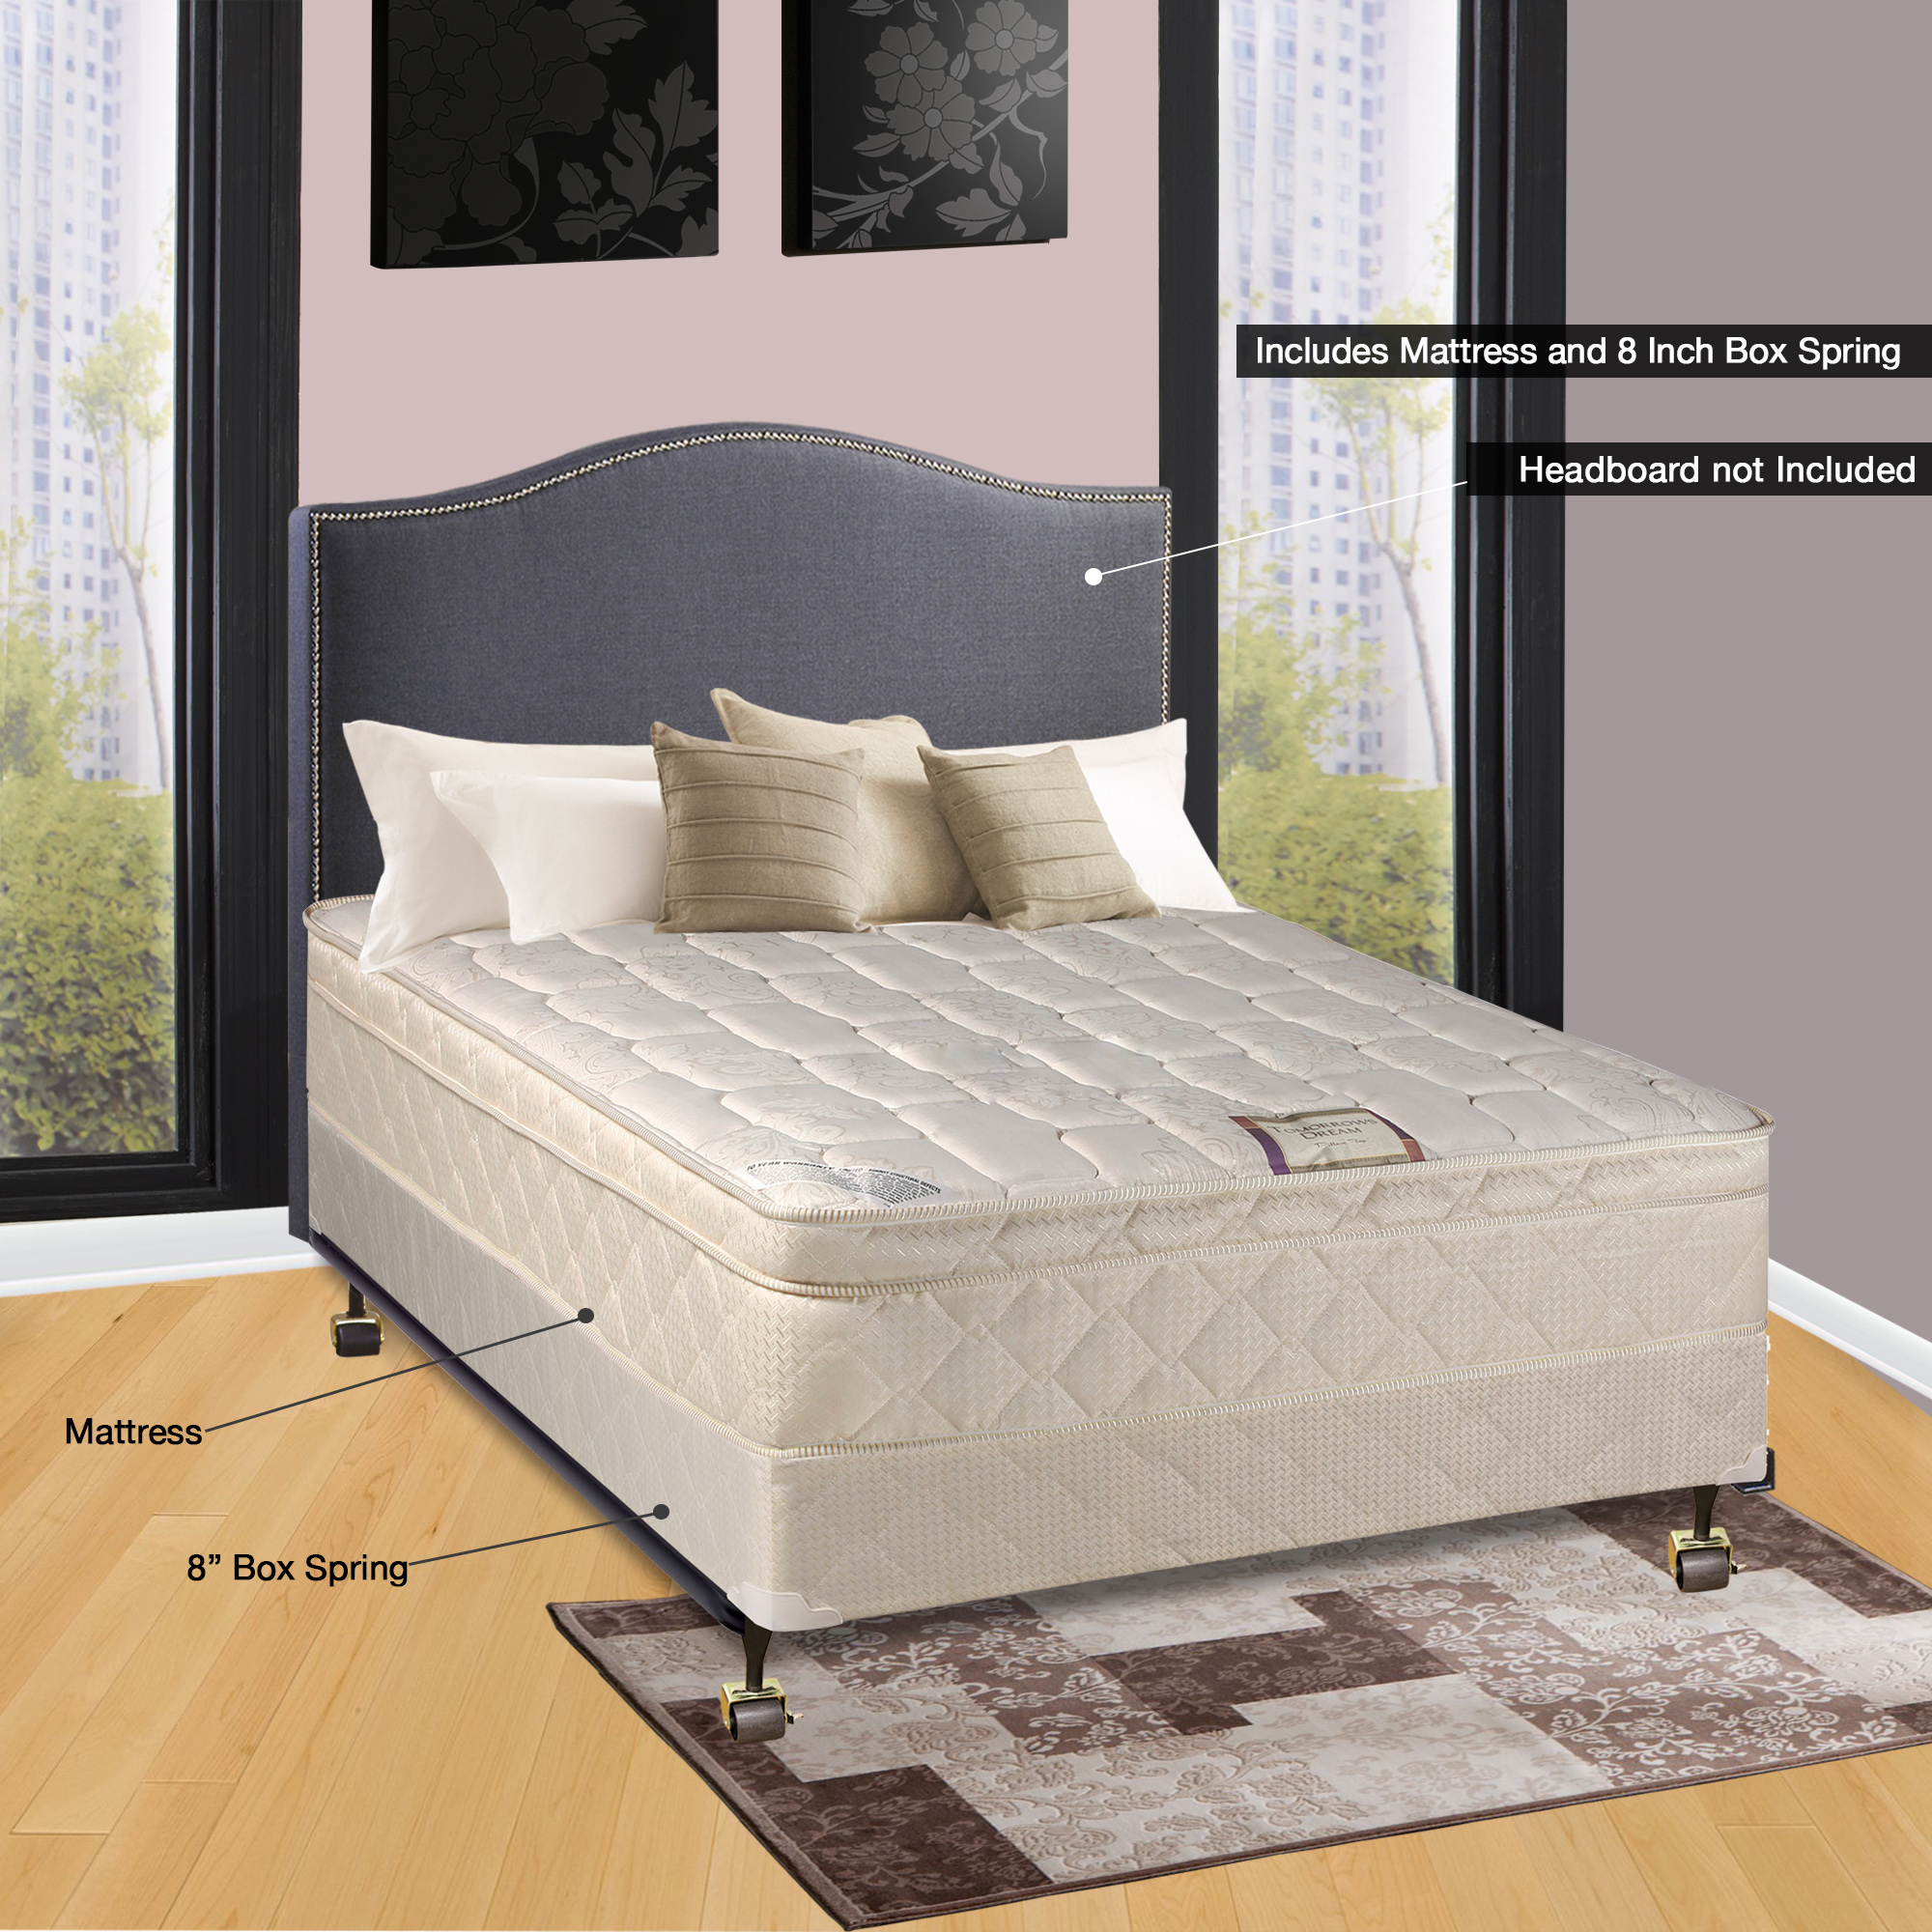 "Spinal Solution 9"" Pillowtop Fully Assembled Orthopedic Mattress and Box Spring, Twin by Continental Sleep"